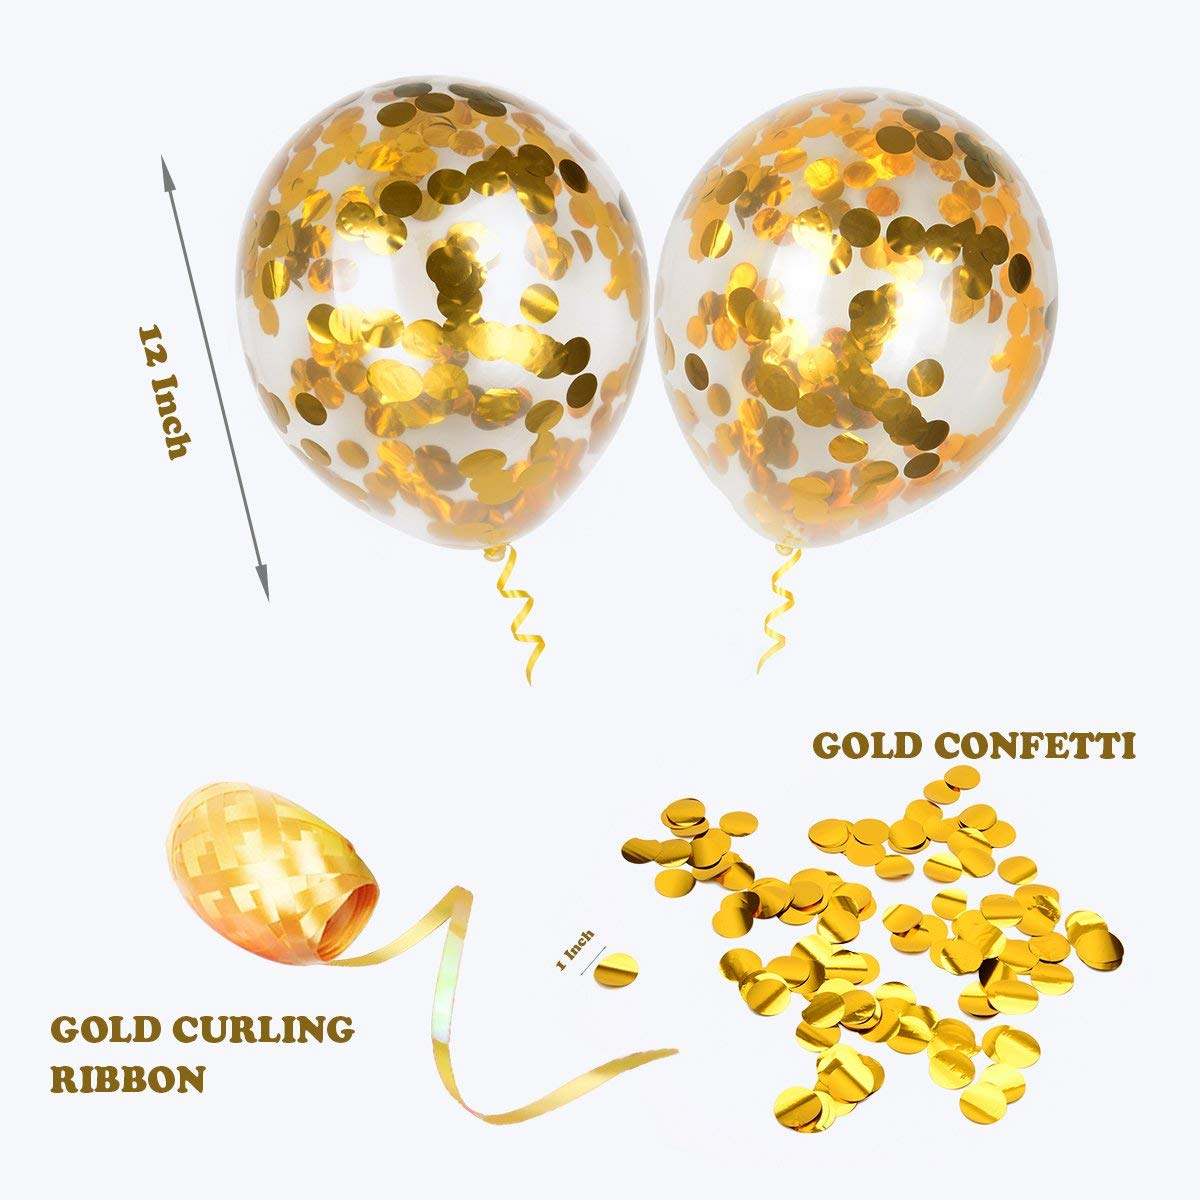 Round 12 Party Balloons Latex Transparent Golden Balloons for Wedding Birthday Party Decorations 20 Pack Proposal HoveBeaty Gold Confetti Balloons